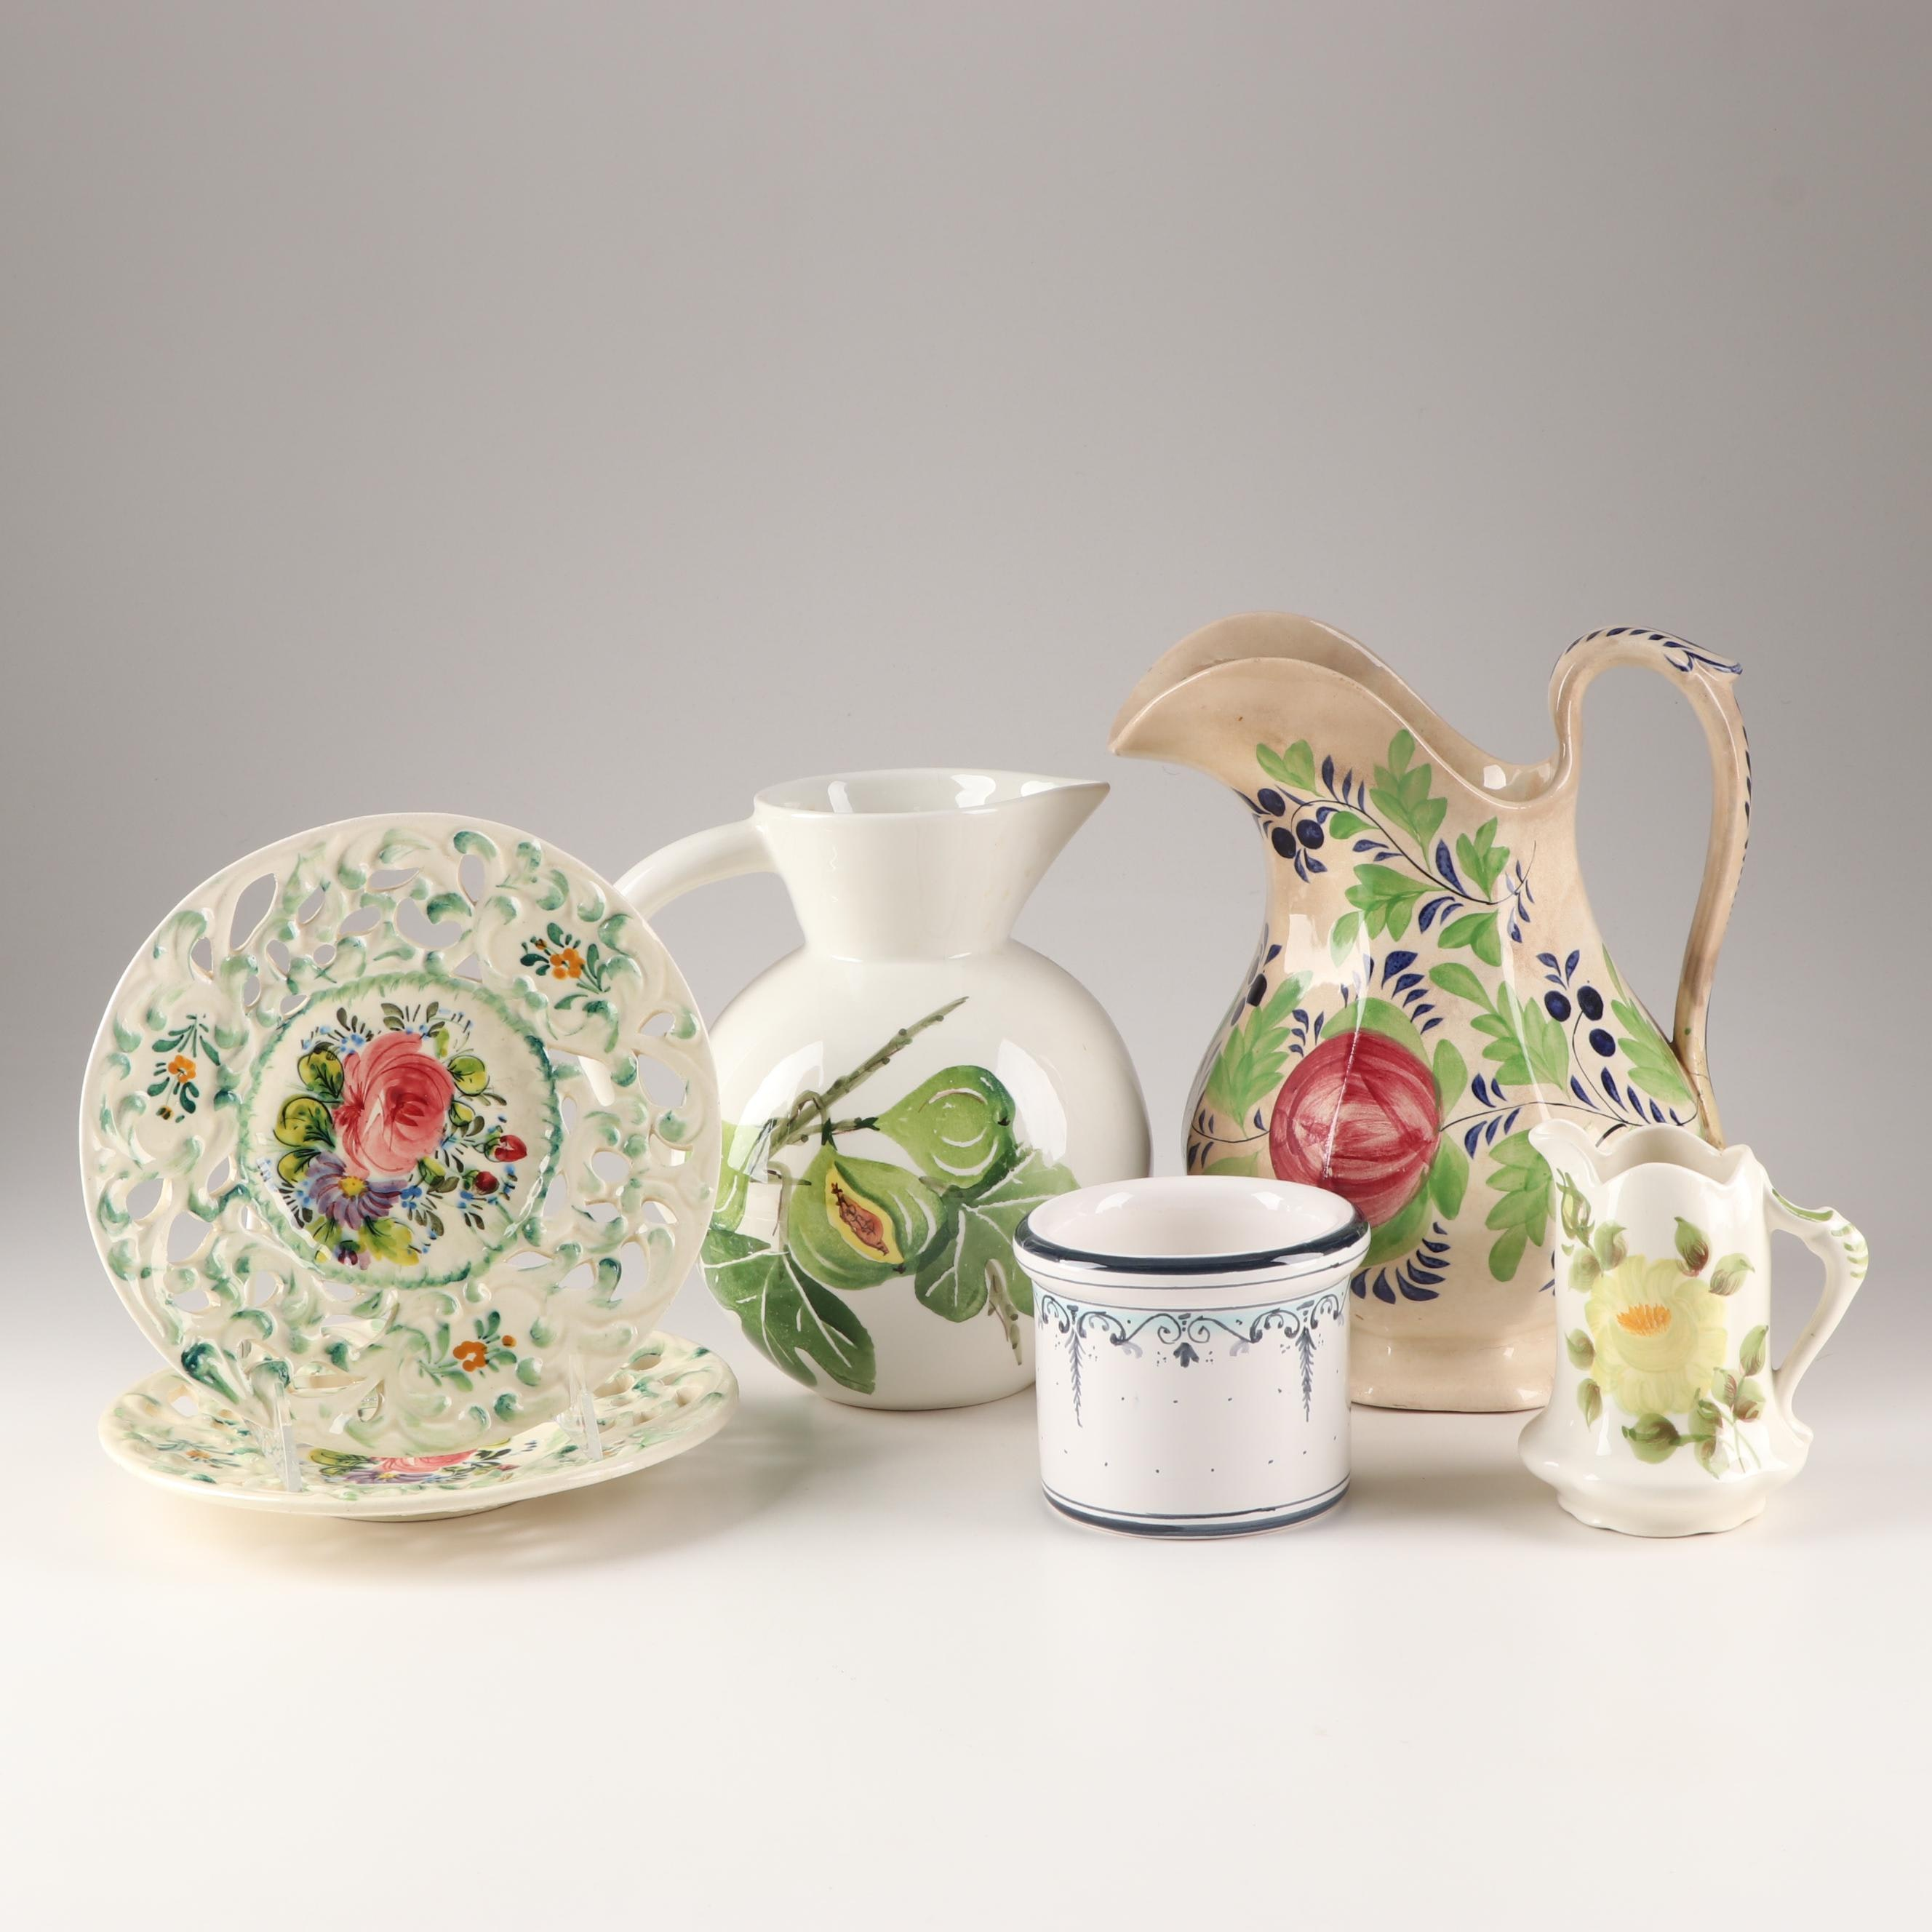 Fruit and Floral Decorative Tableware Featuring Gaudy Dutch Pitcher